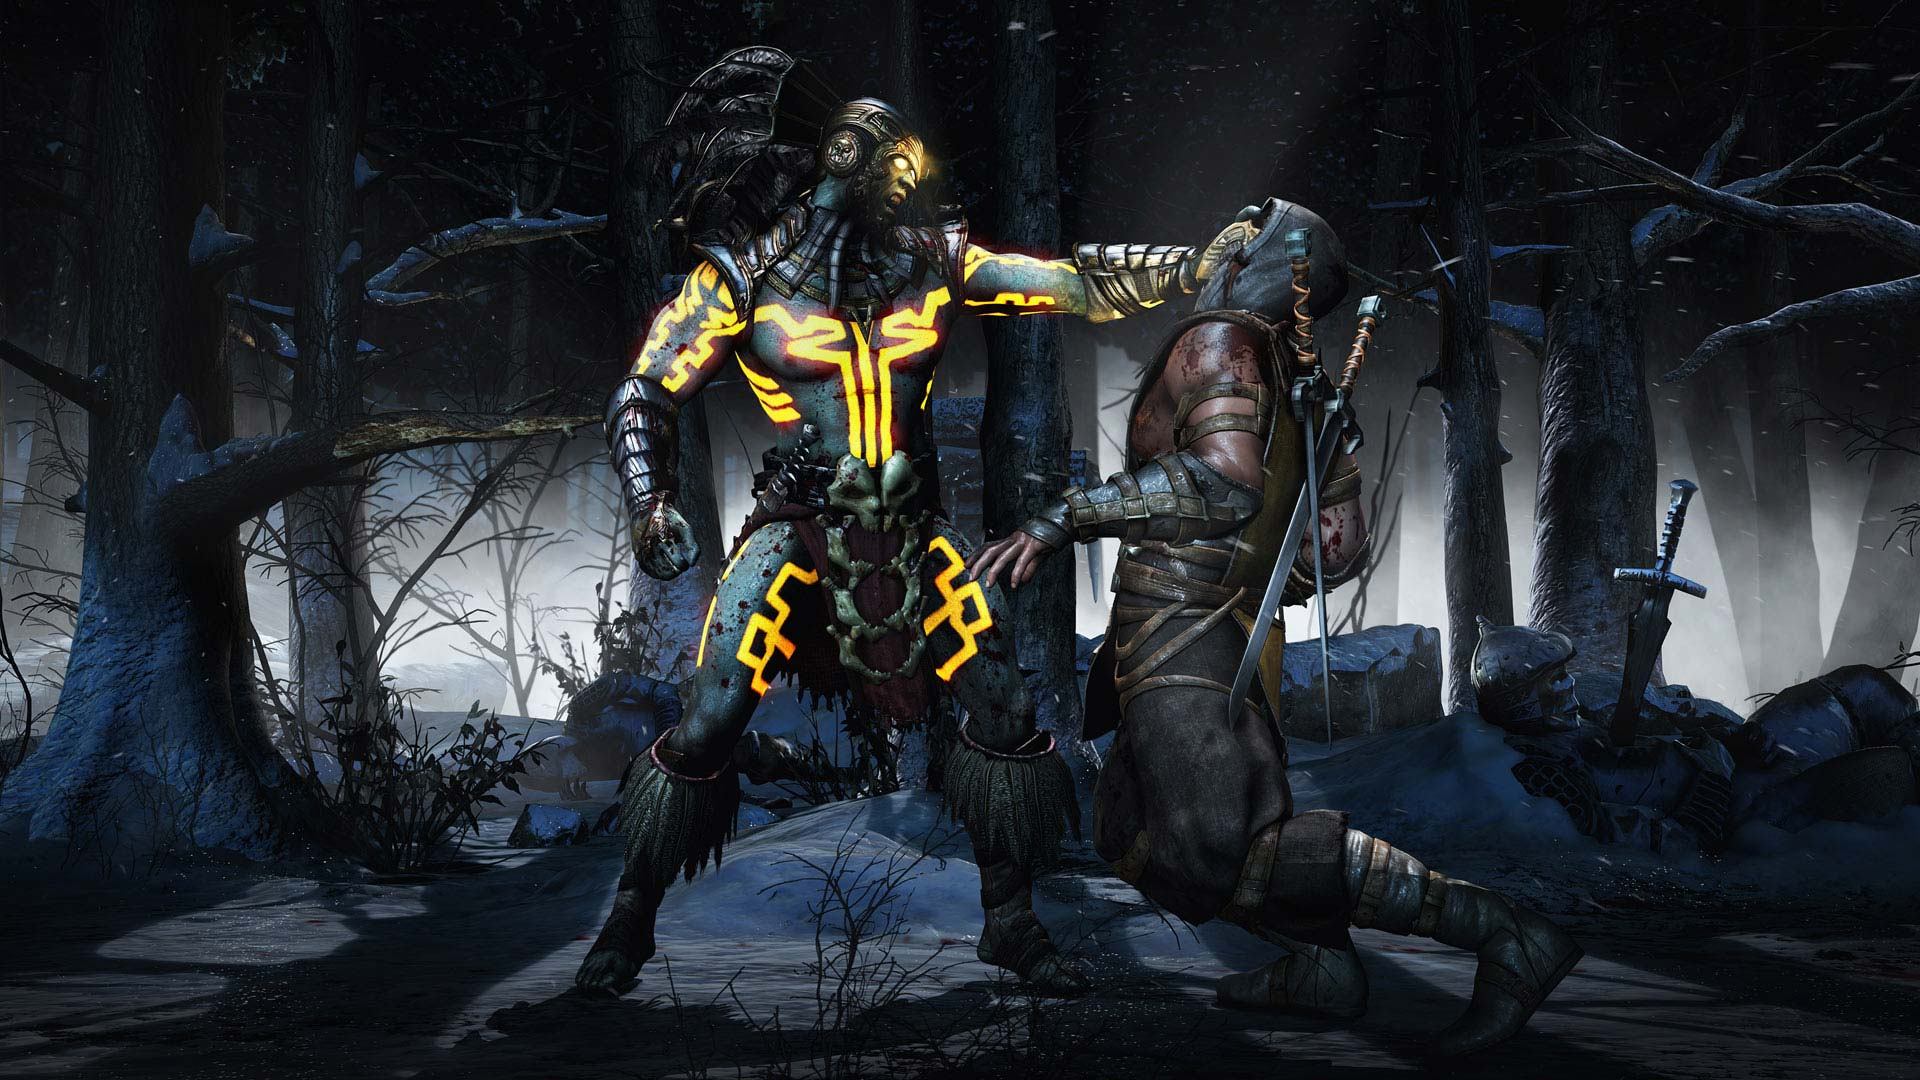 Mortal Kombat X ESPAÑOL PC Full PROPER + Update v20150908 (RELOADED) + REPACK 7 DVD5 (JPW) 4